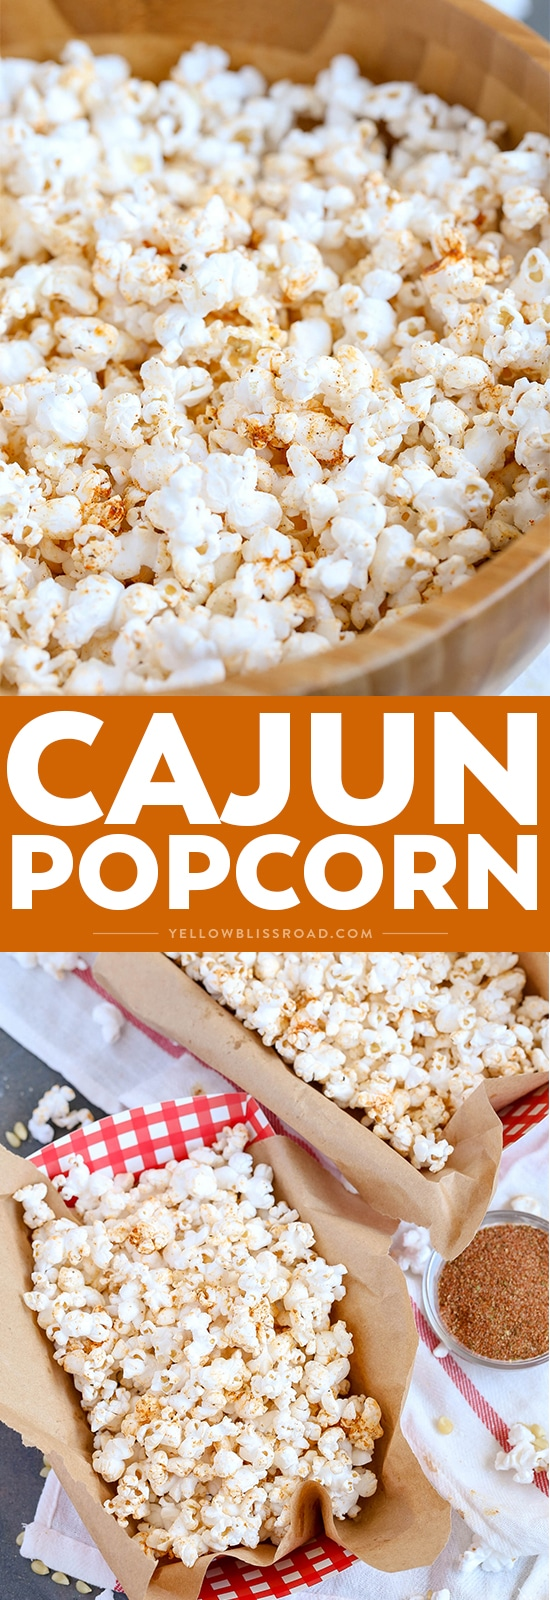 Cajun Popcorn with homemade cajun seasoning photo collage